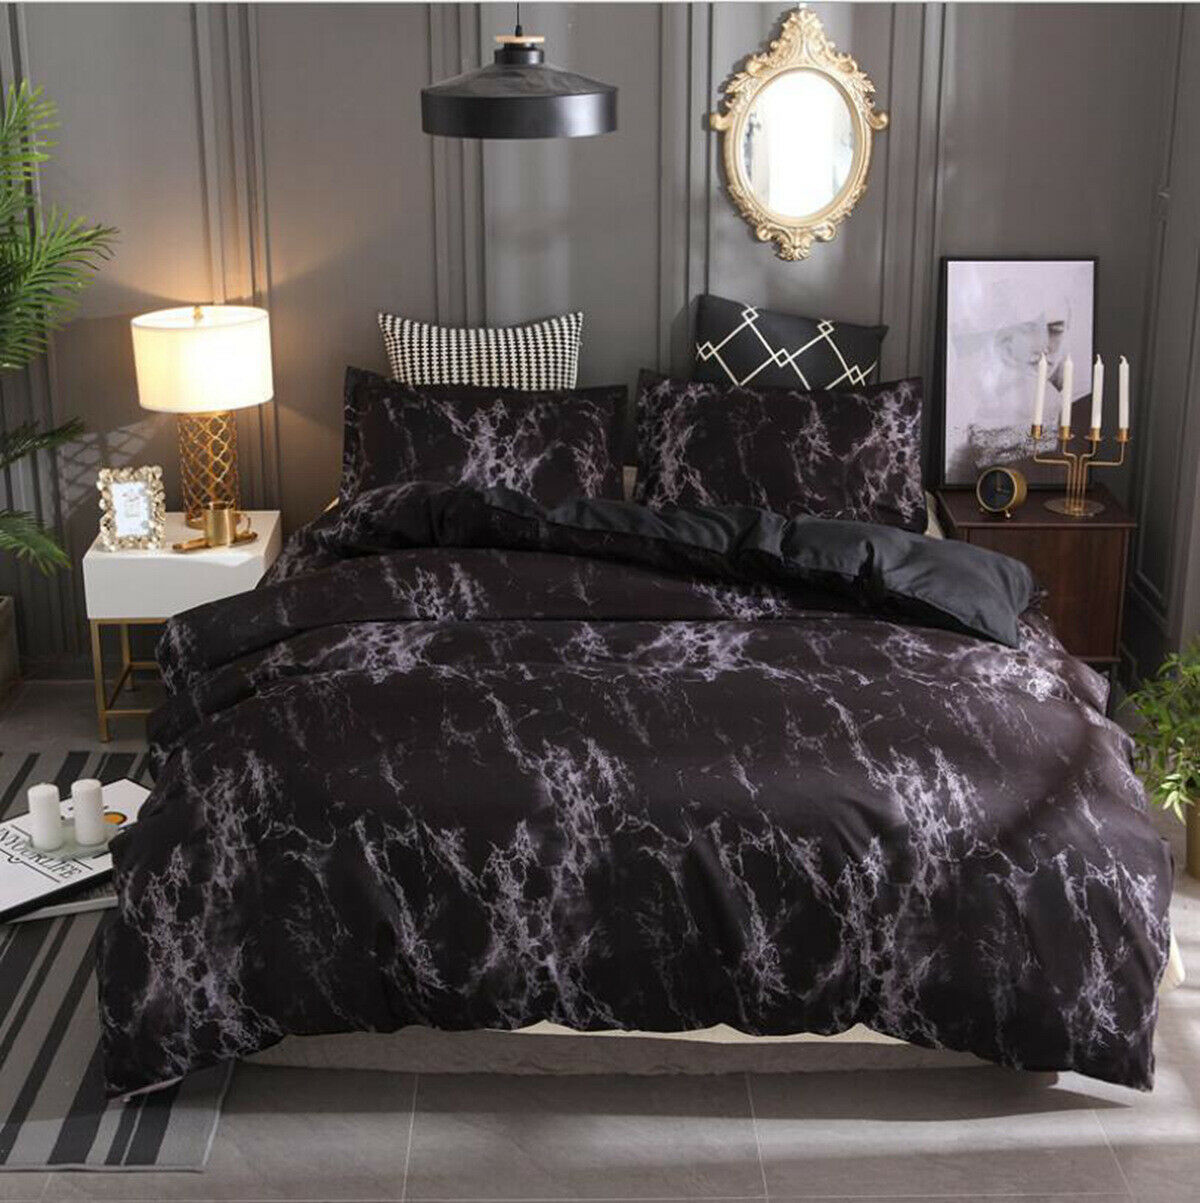 Marble Black - Single/Double/Queen/King/Super King - Quilt Cover Set